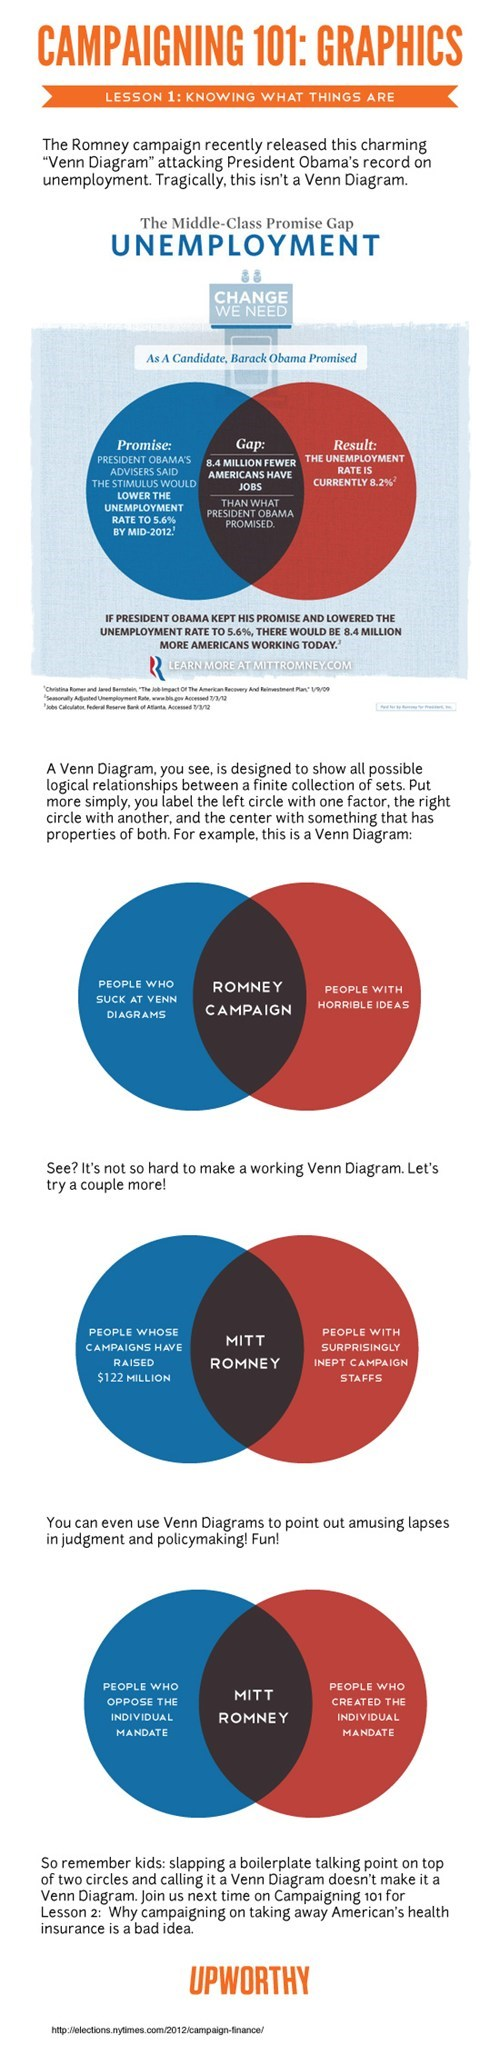 best of week misused Mitt Romney obama politics venn diagrams - 6402232064